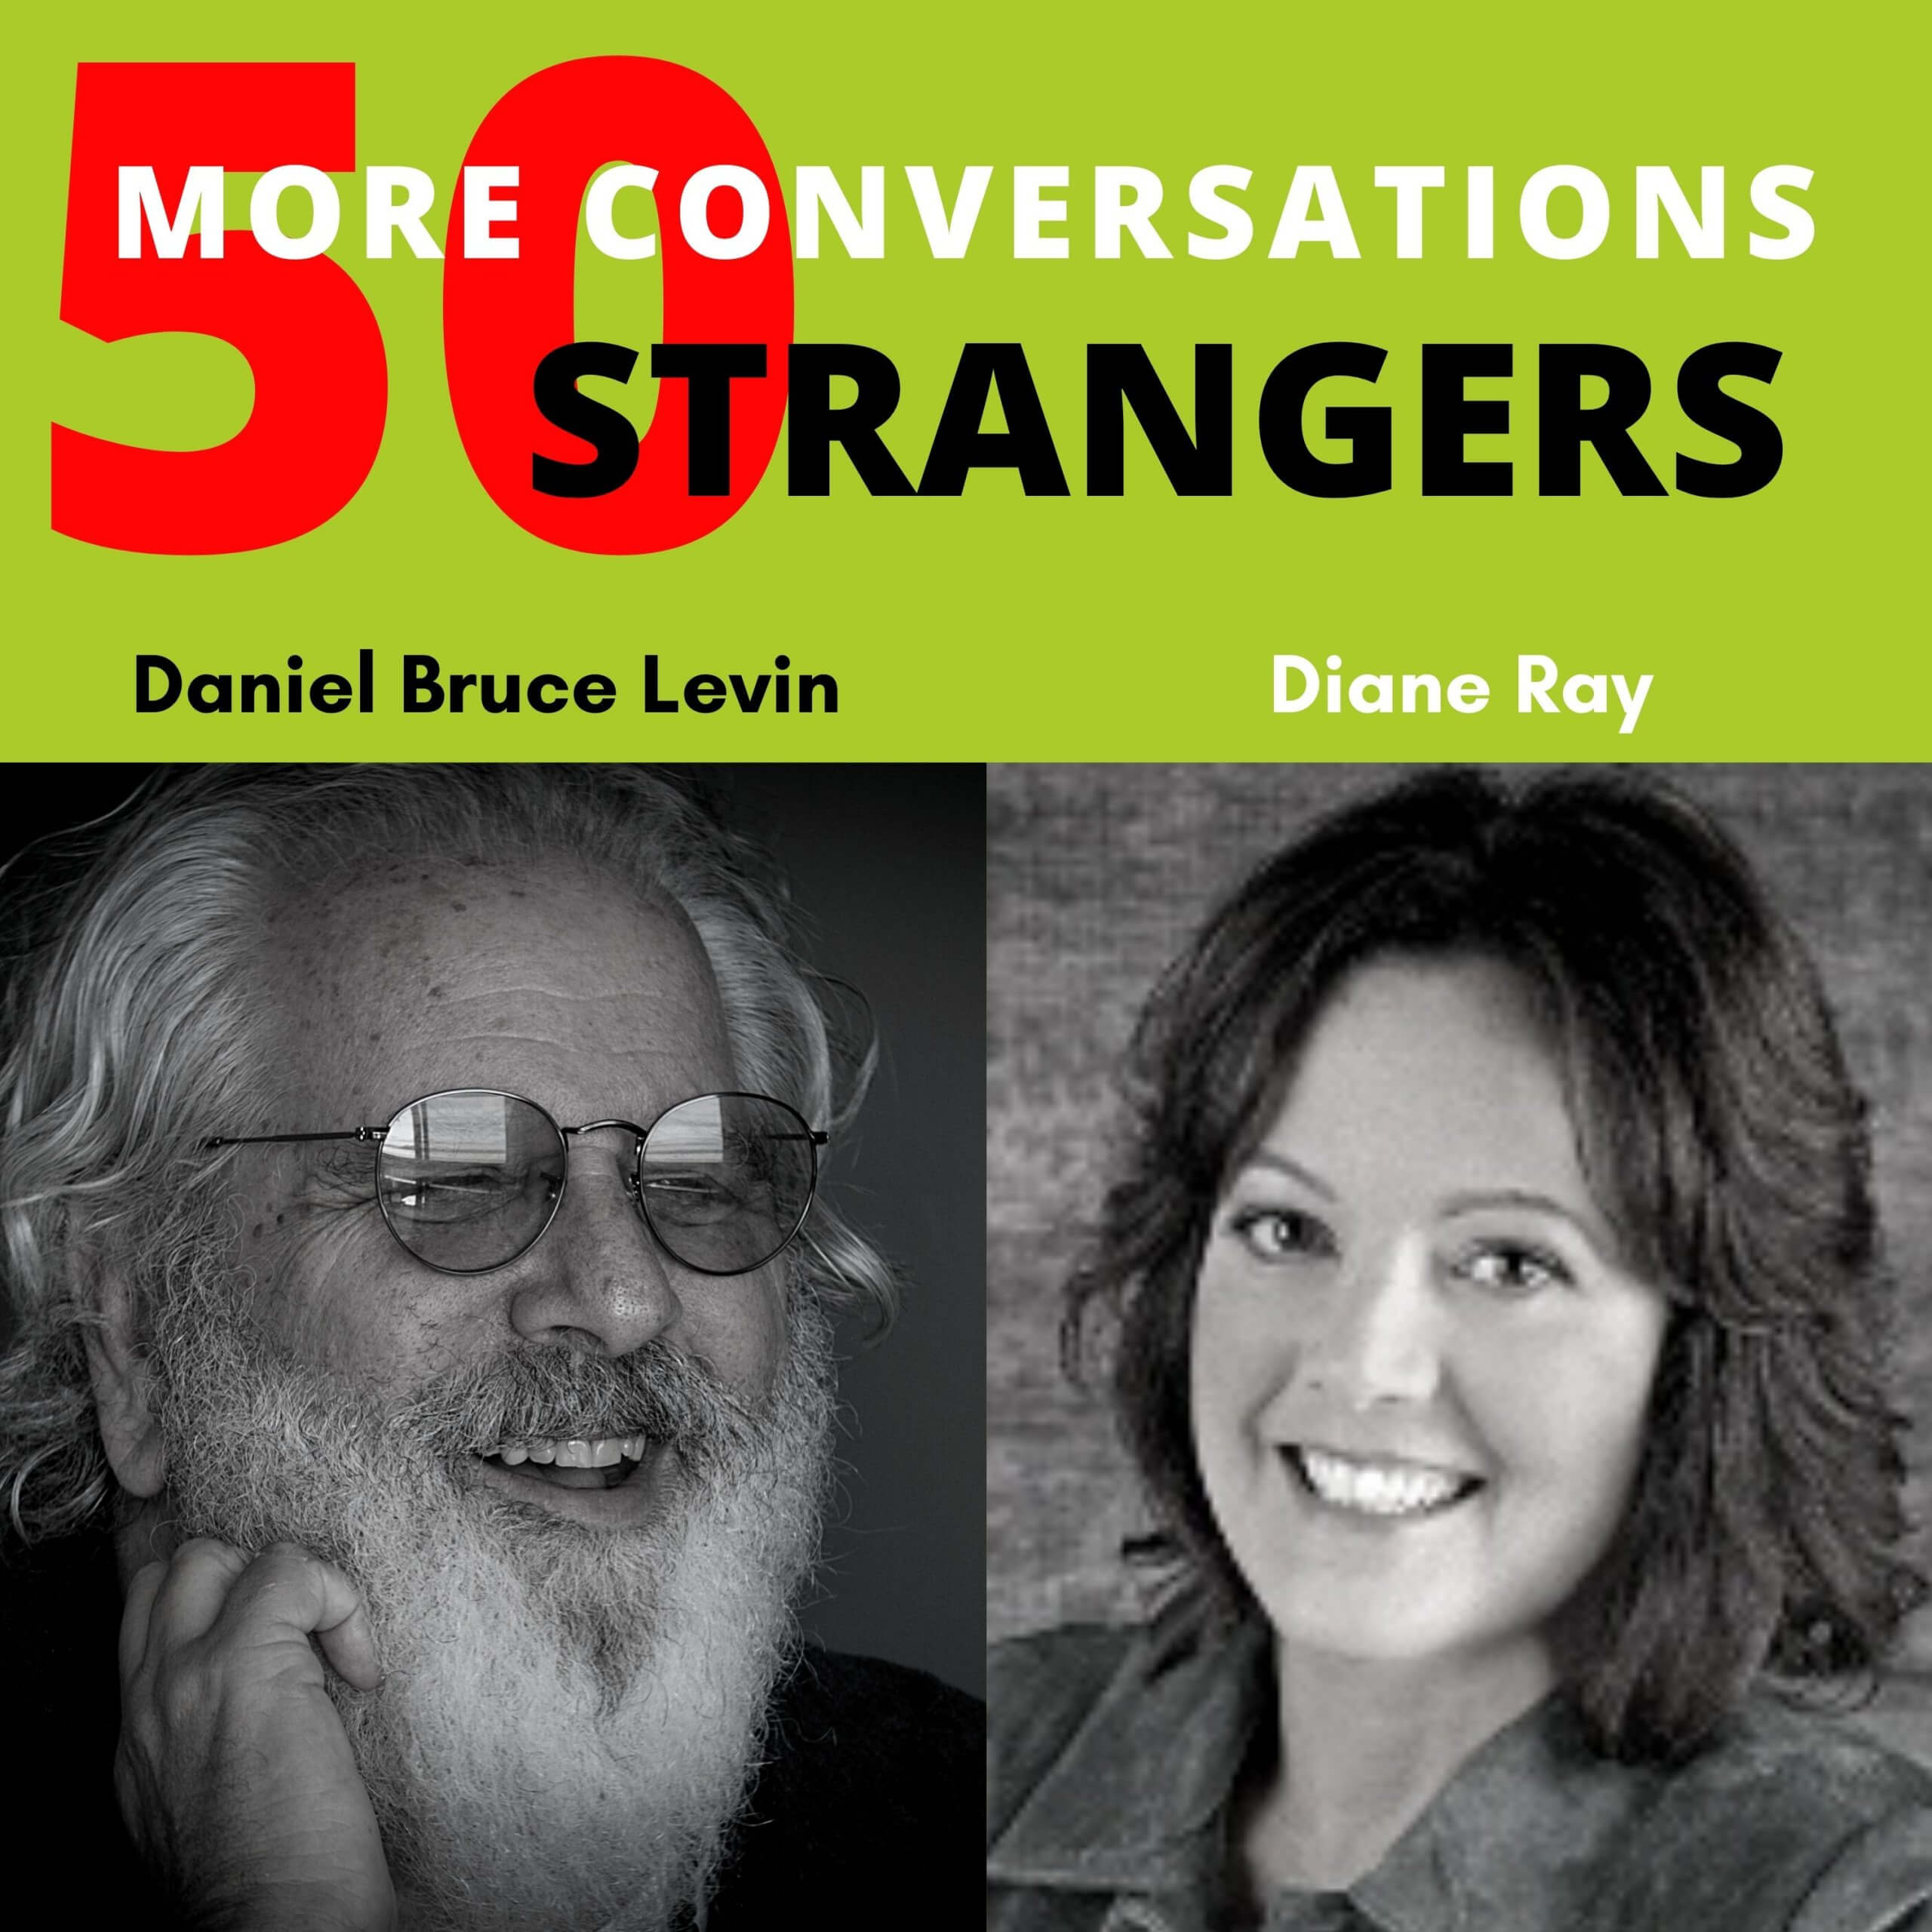 50 More Conversations with 50 More Strangers with Diane Ray